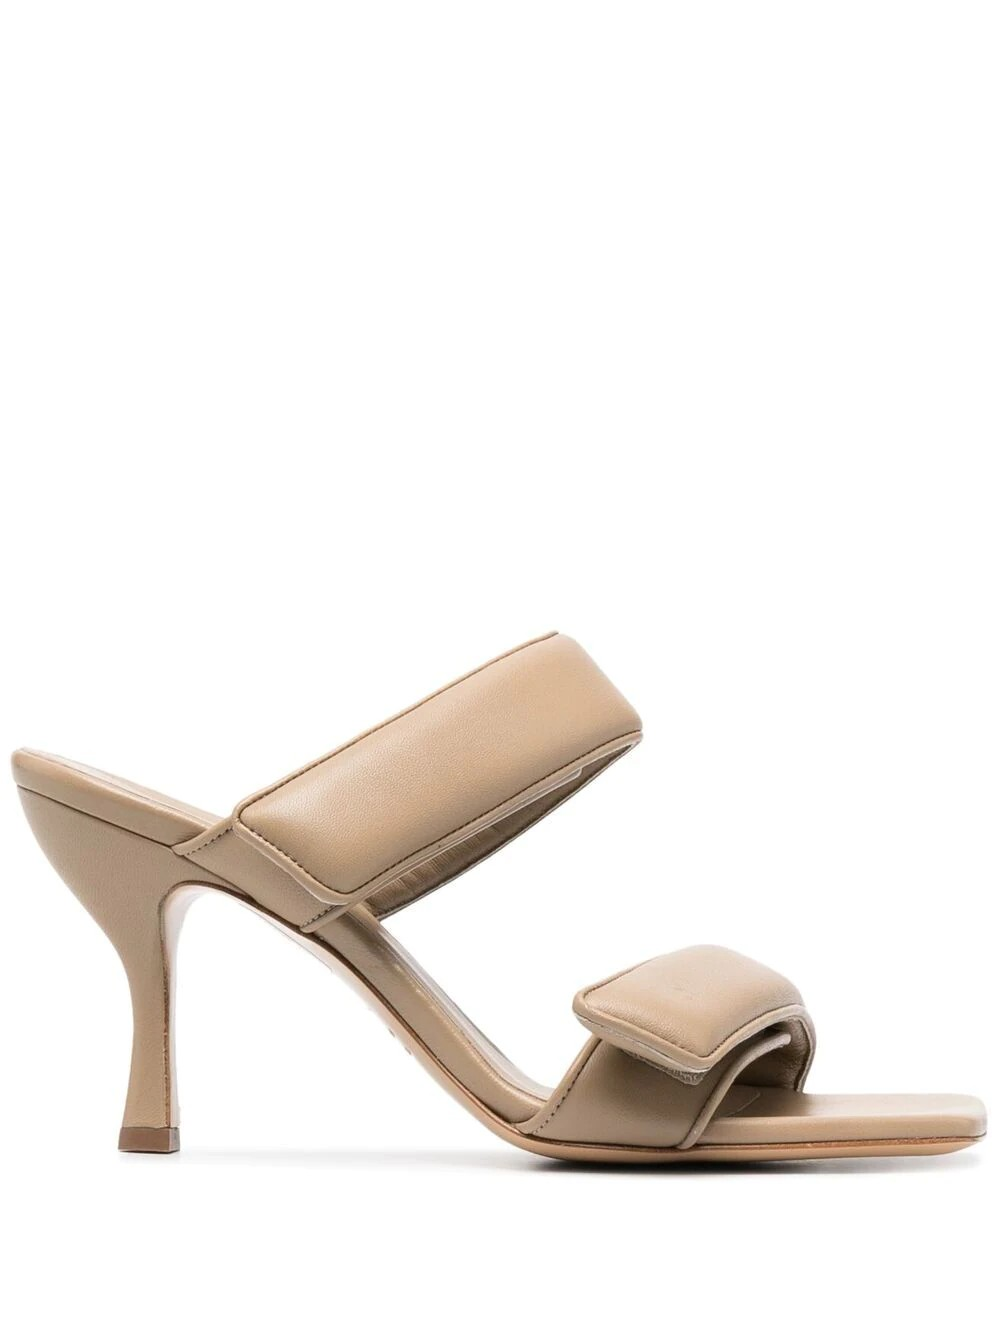 80 MM TWO STRAP SANDALS